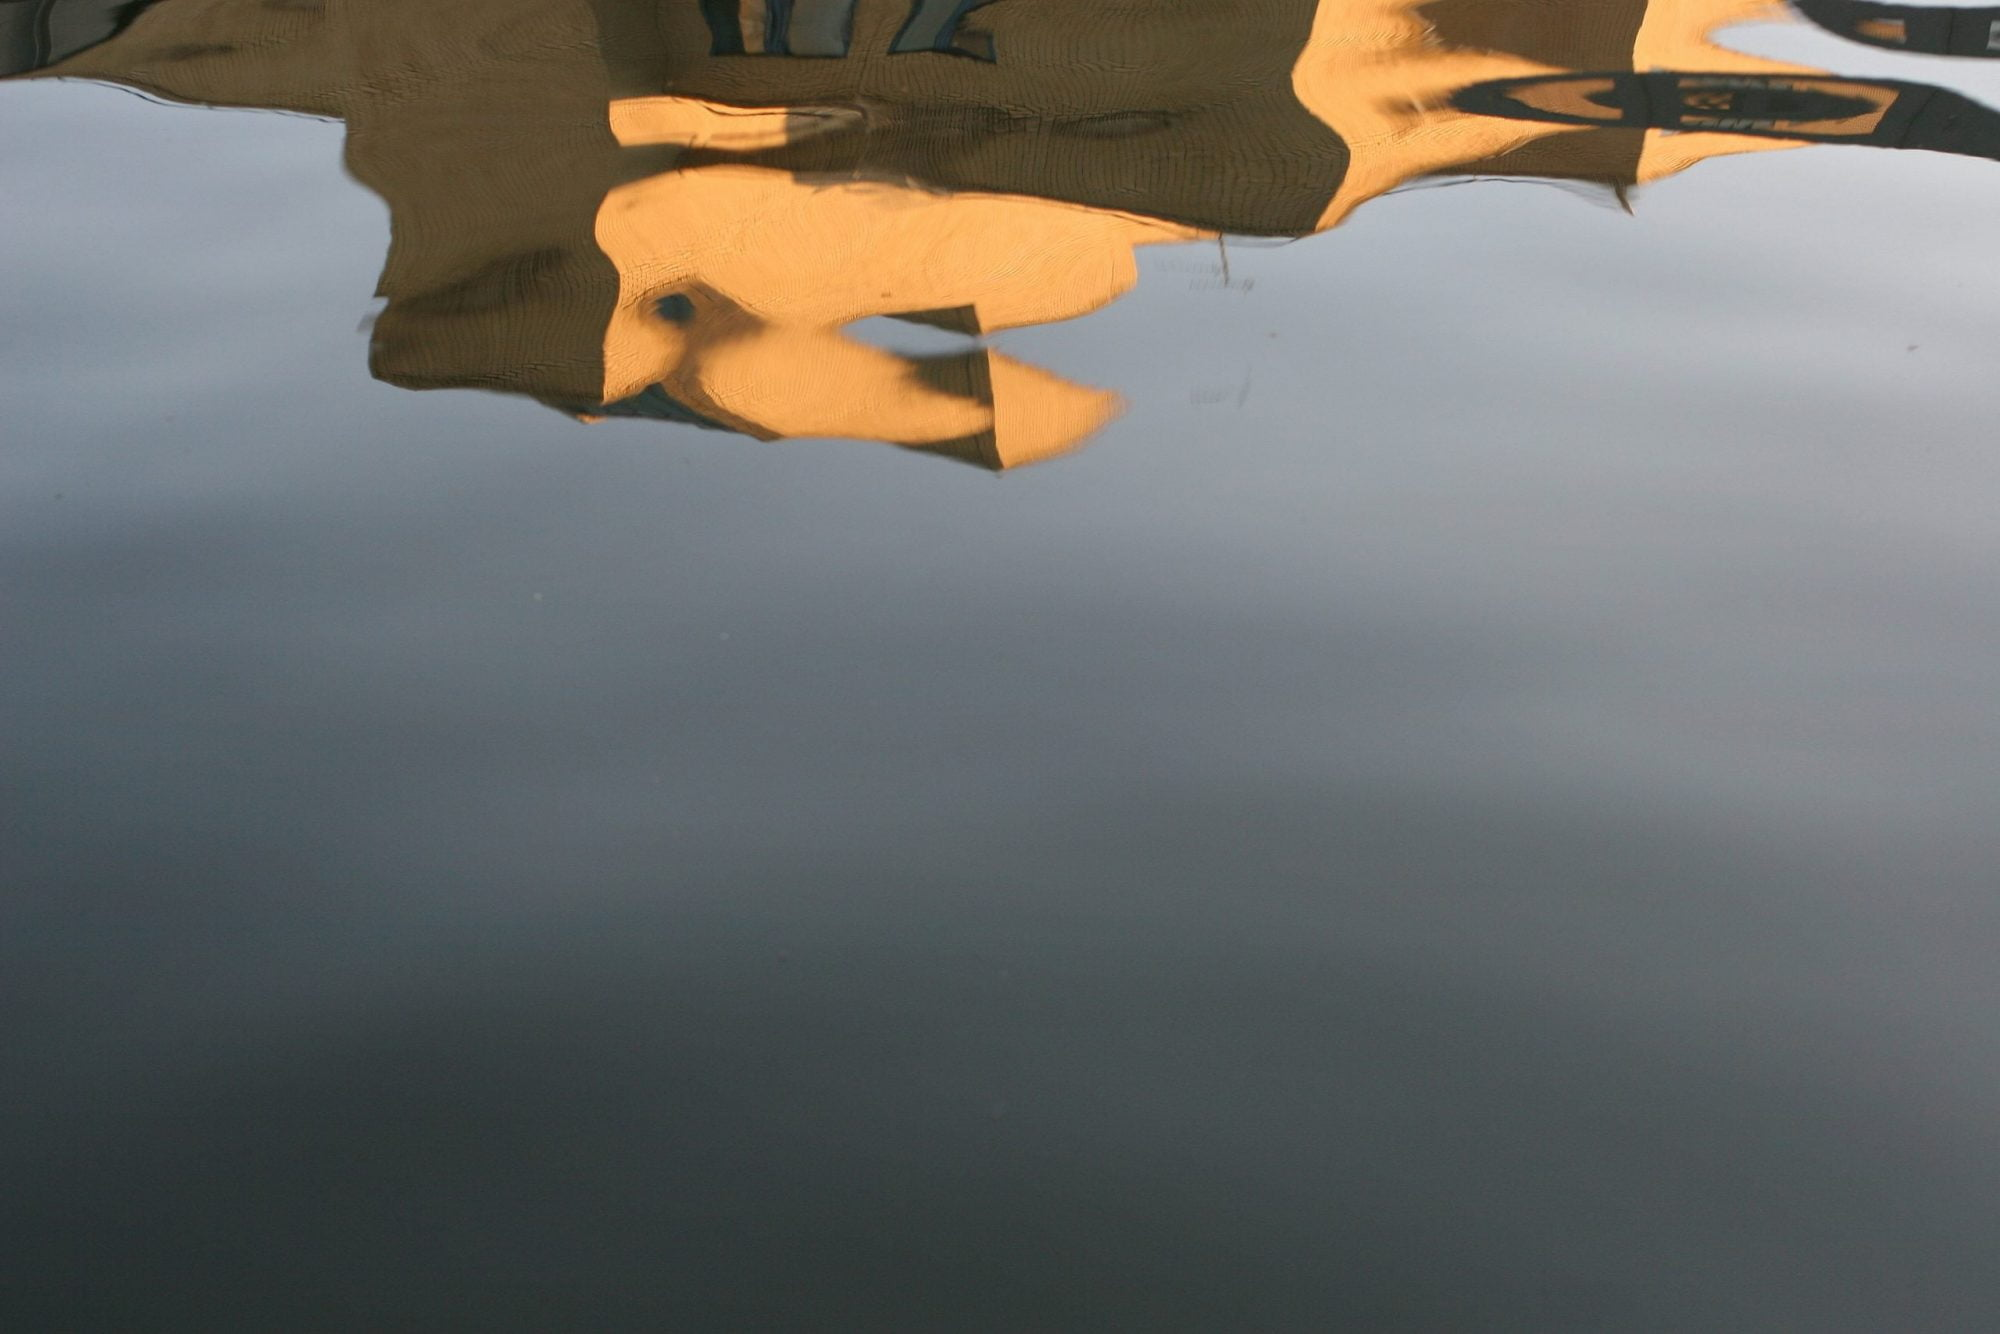 An expanse of water fills the image. At the top of the image is a distorted reflection of a building in pale brick. The water is very still.